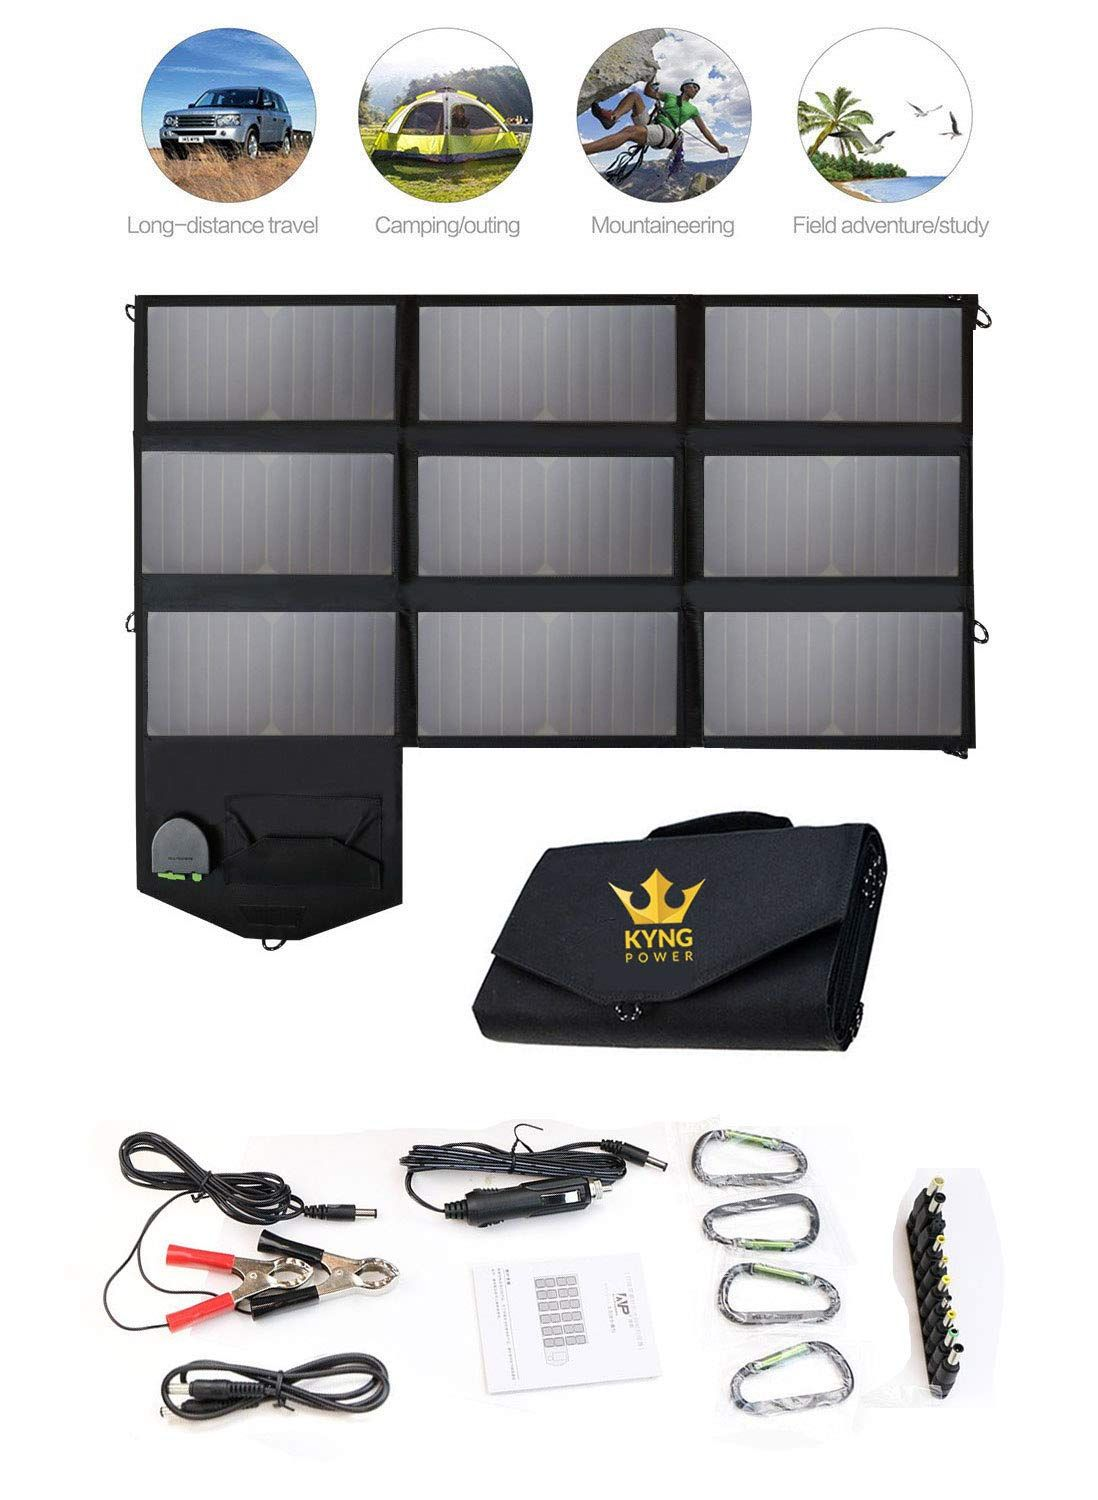 Kyng Power Foldable Solar Panel Charger Portable 60w Charger Solar Generator Panel Power Station Use Solar Panel Charger Solar Generator Portable Solar Panels